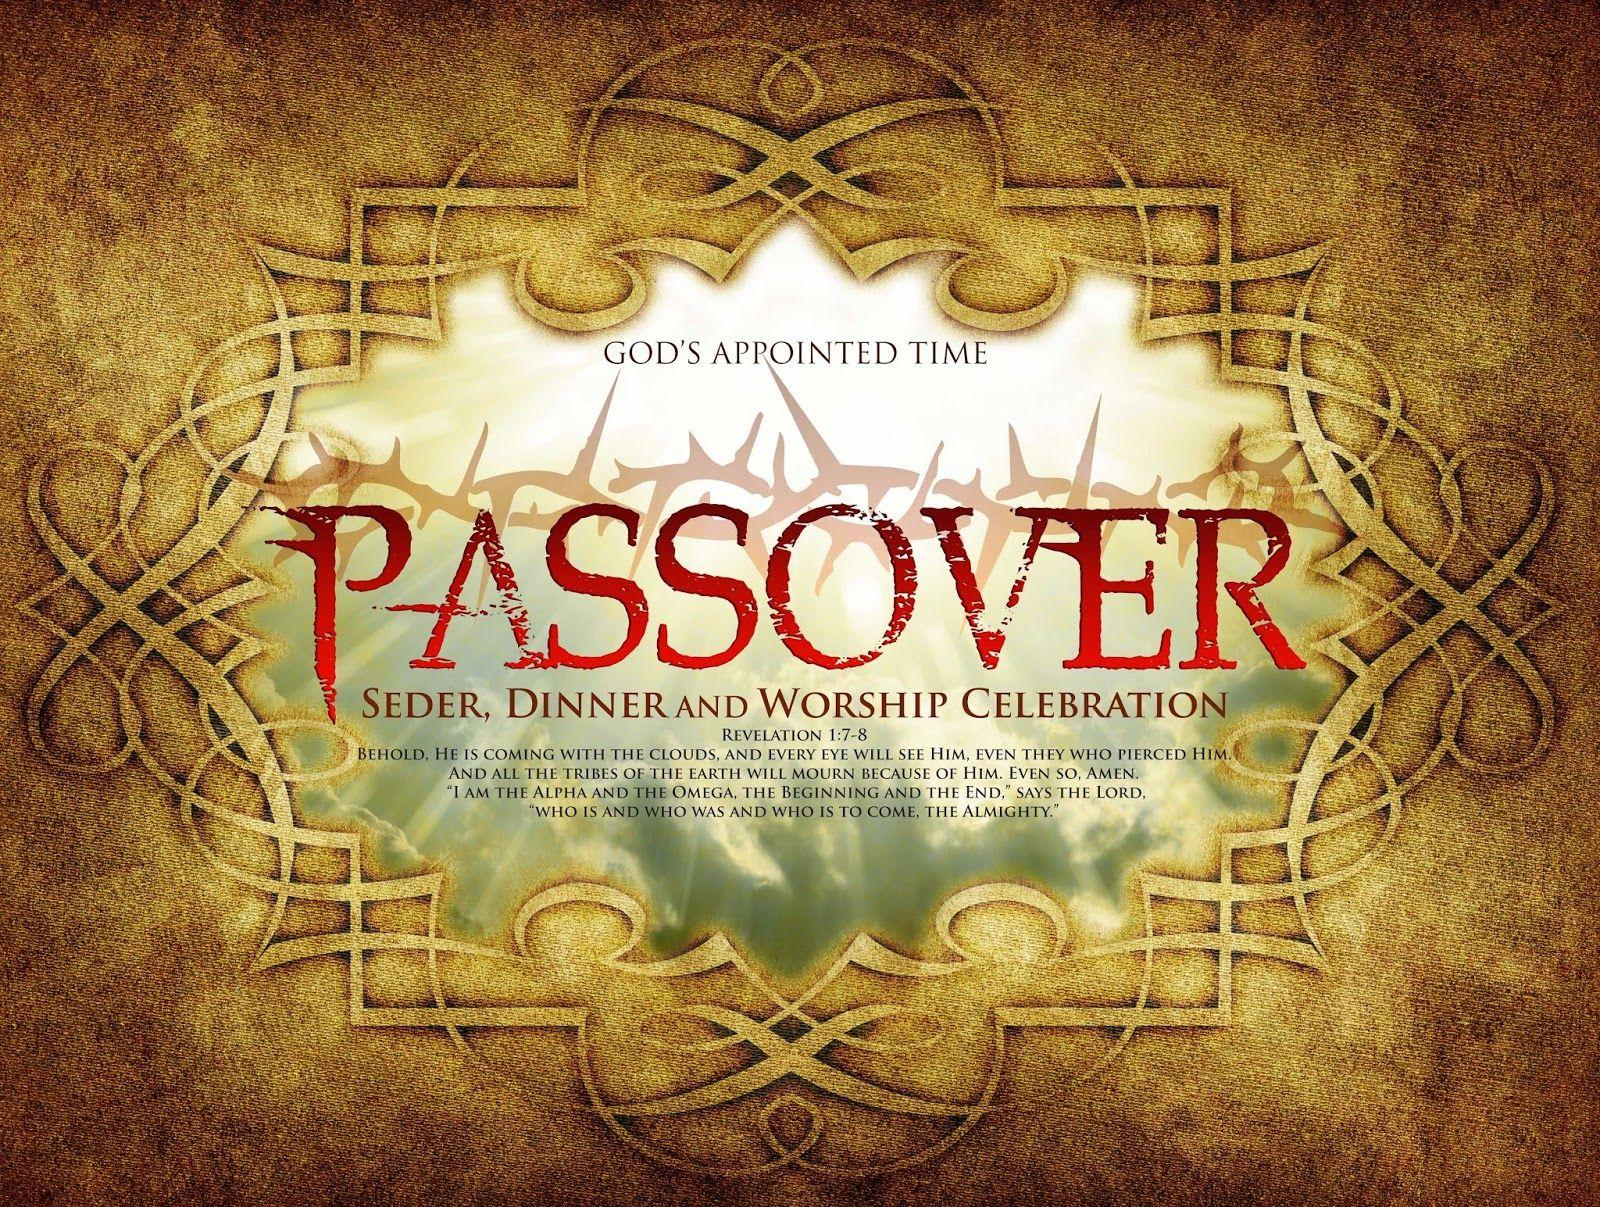 HD*] Image, Pictures, Cards & Wallpapers Of Happy Passover 2018